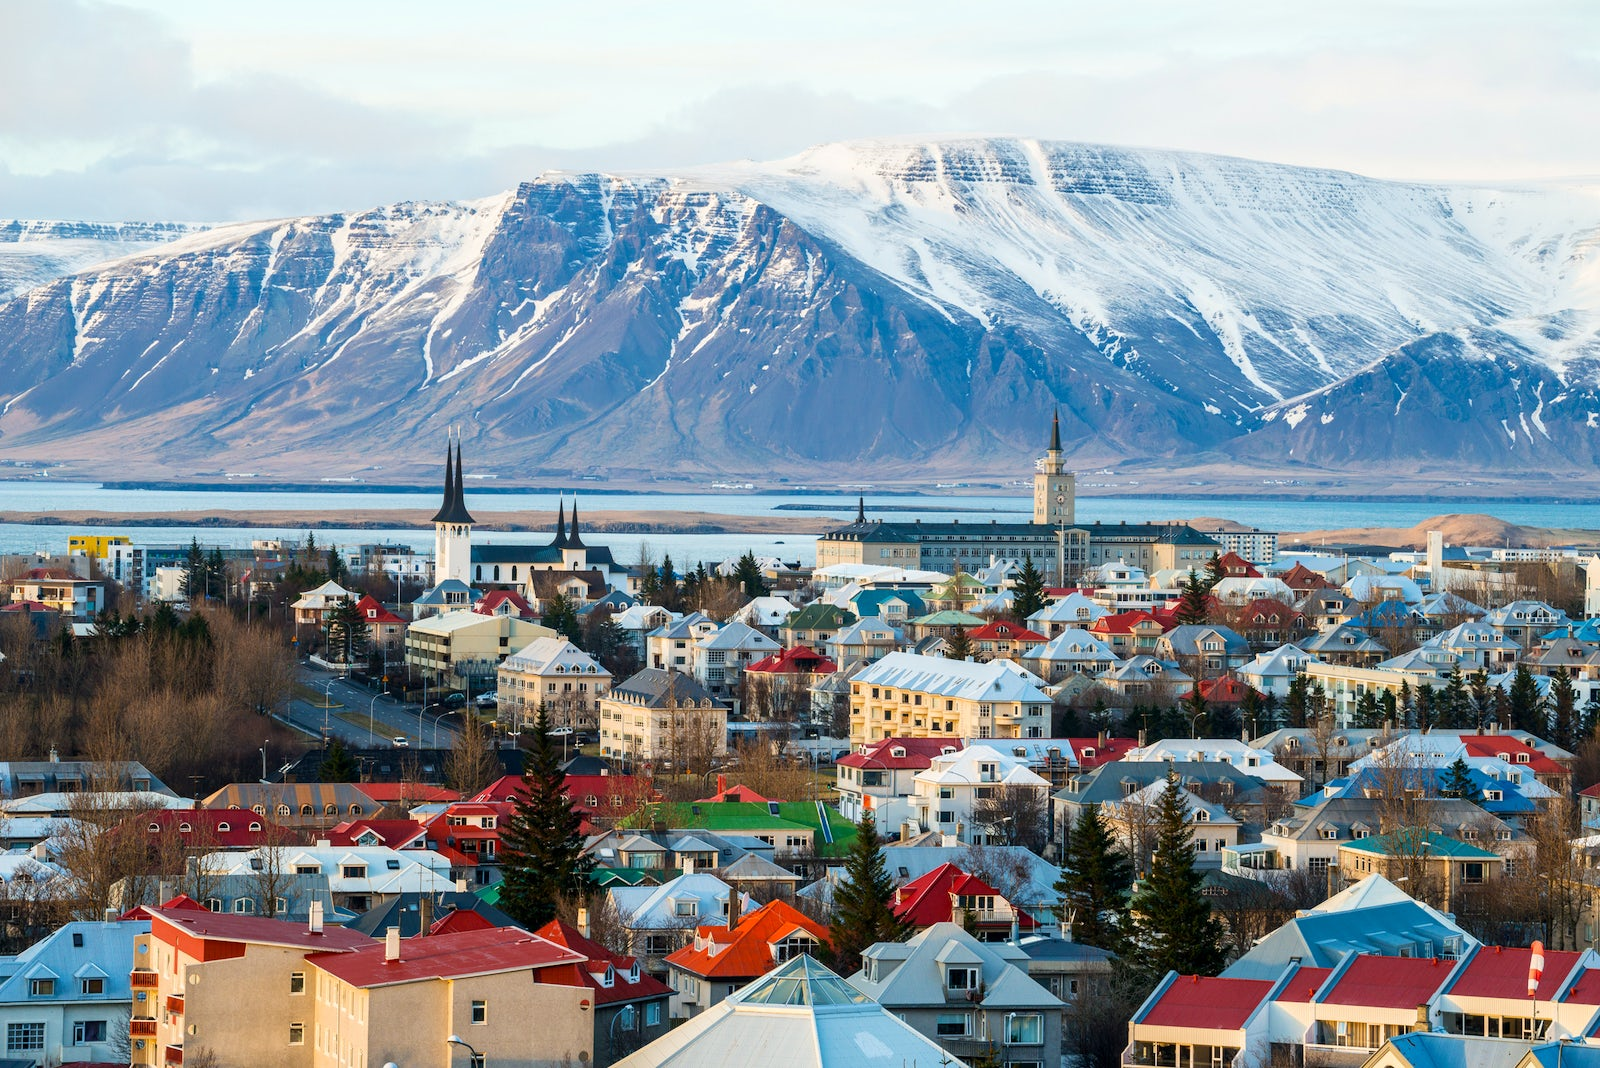 !i18n:es:data.cities:reykjavik.picture.caption